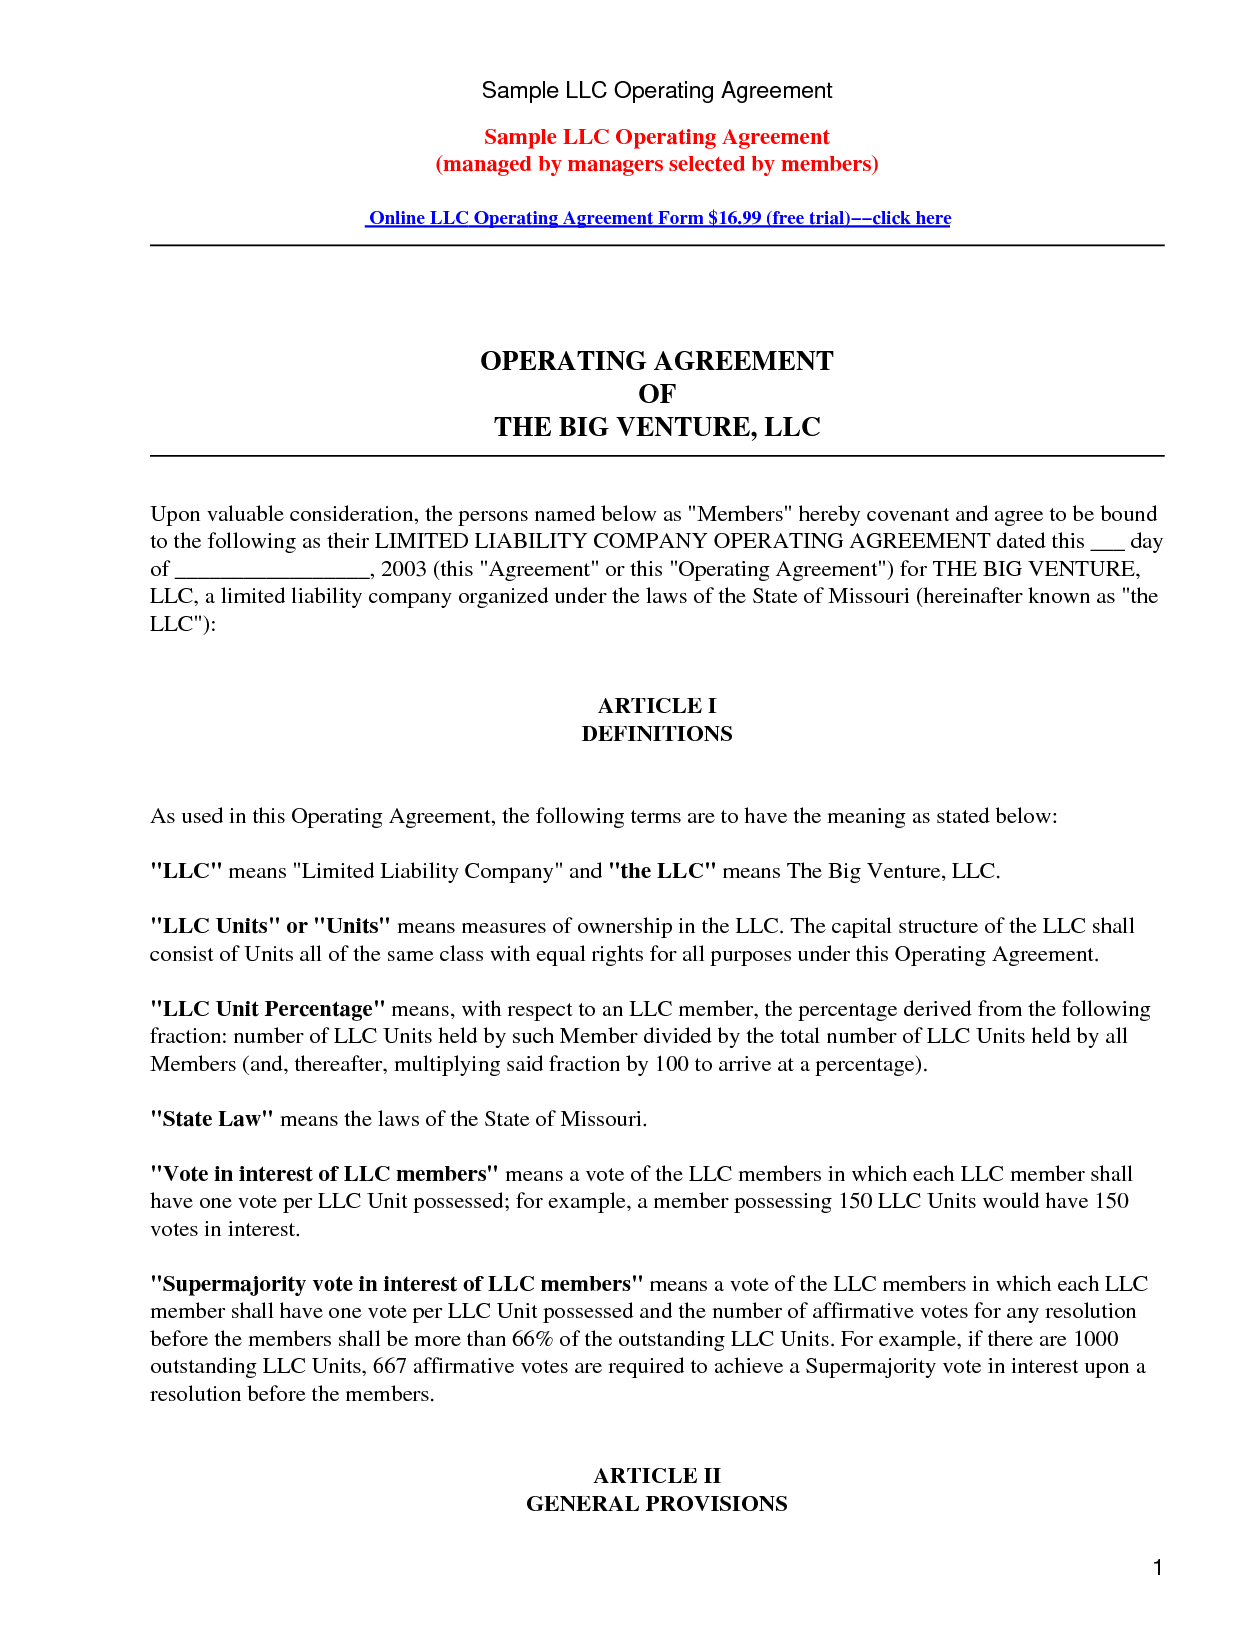 Free sample llc operating agreement by kennwood llc for Free llc operating agreement